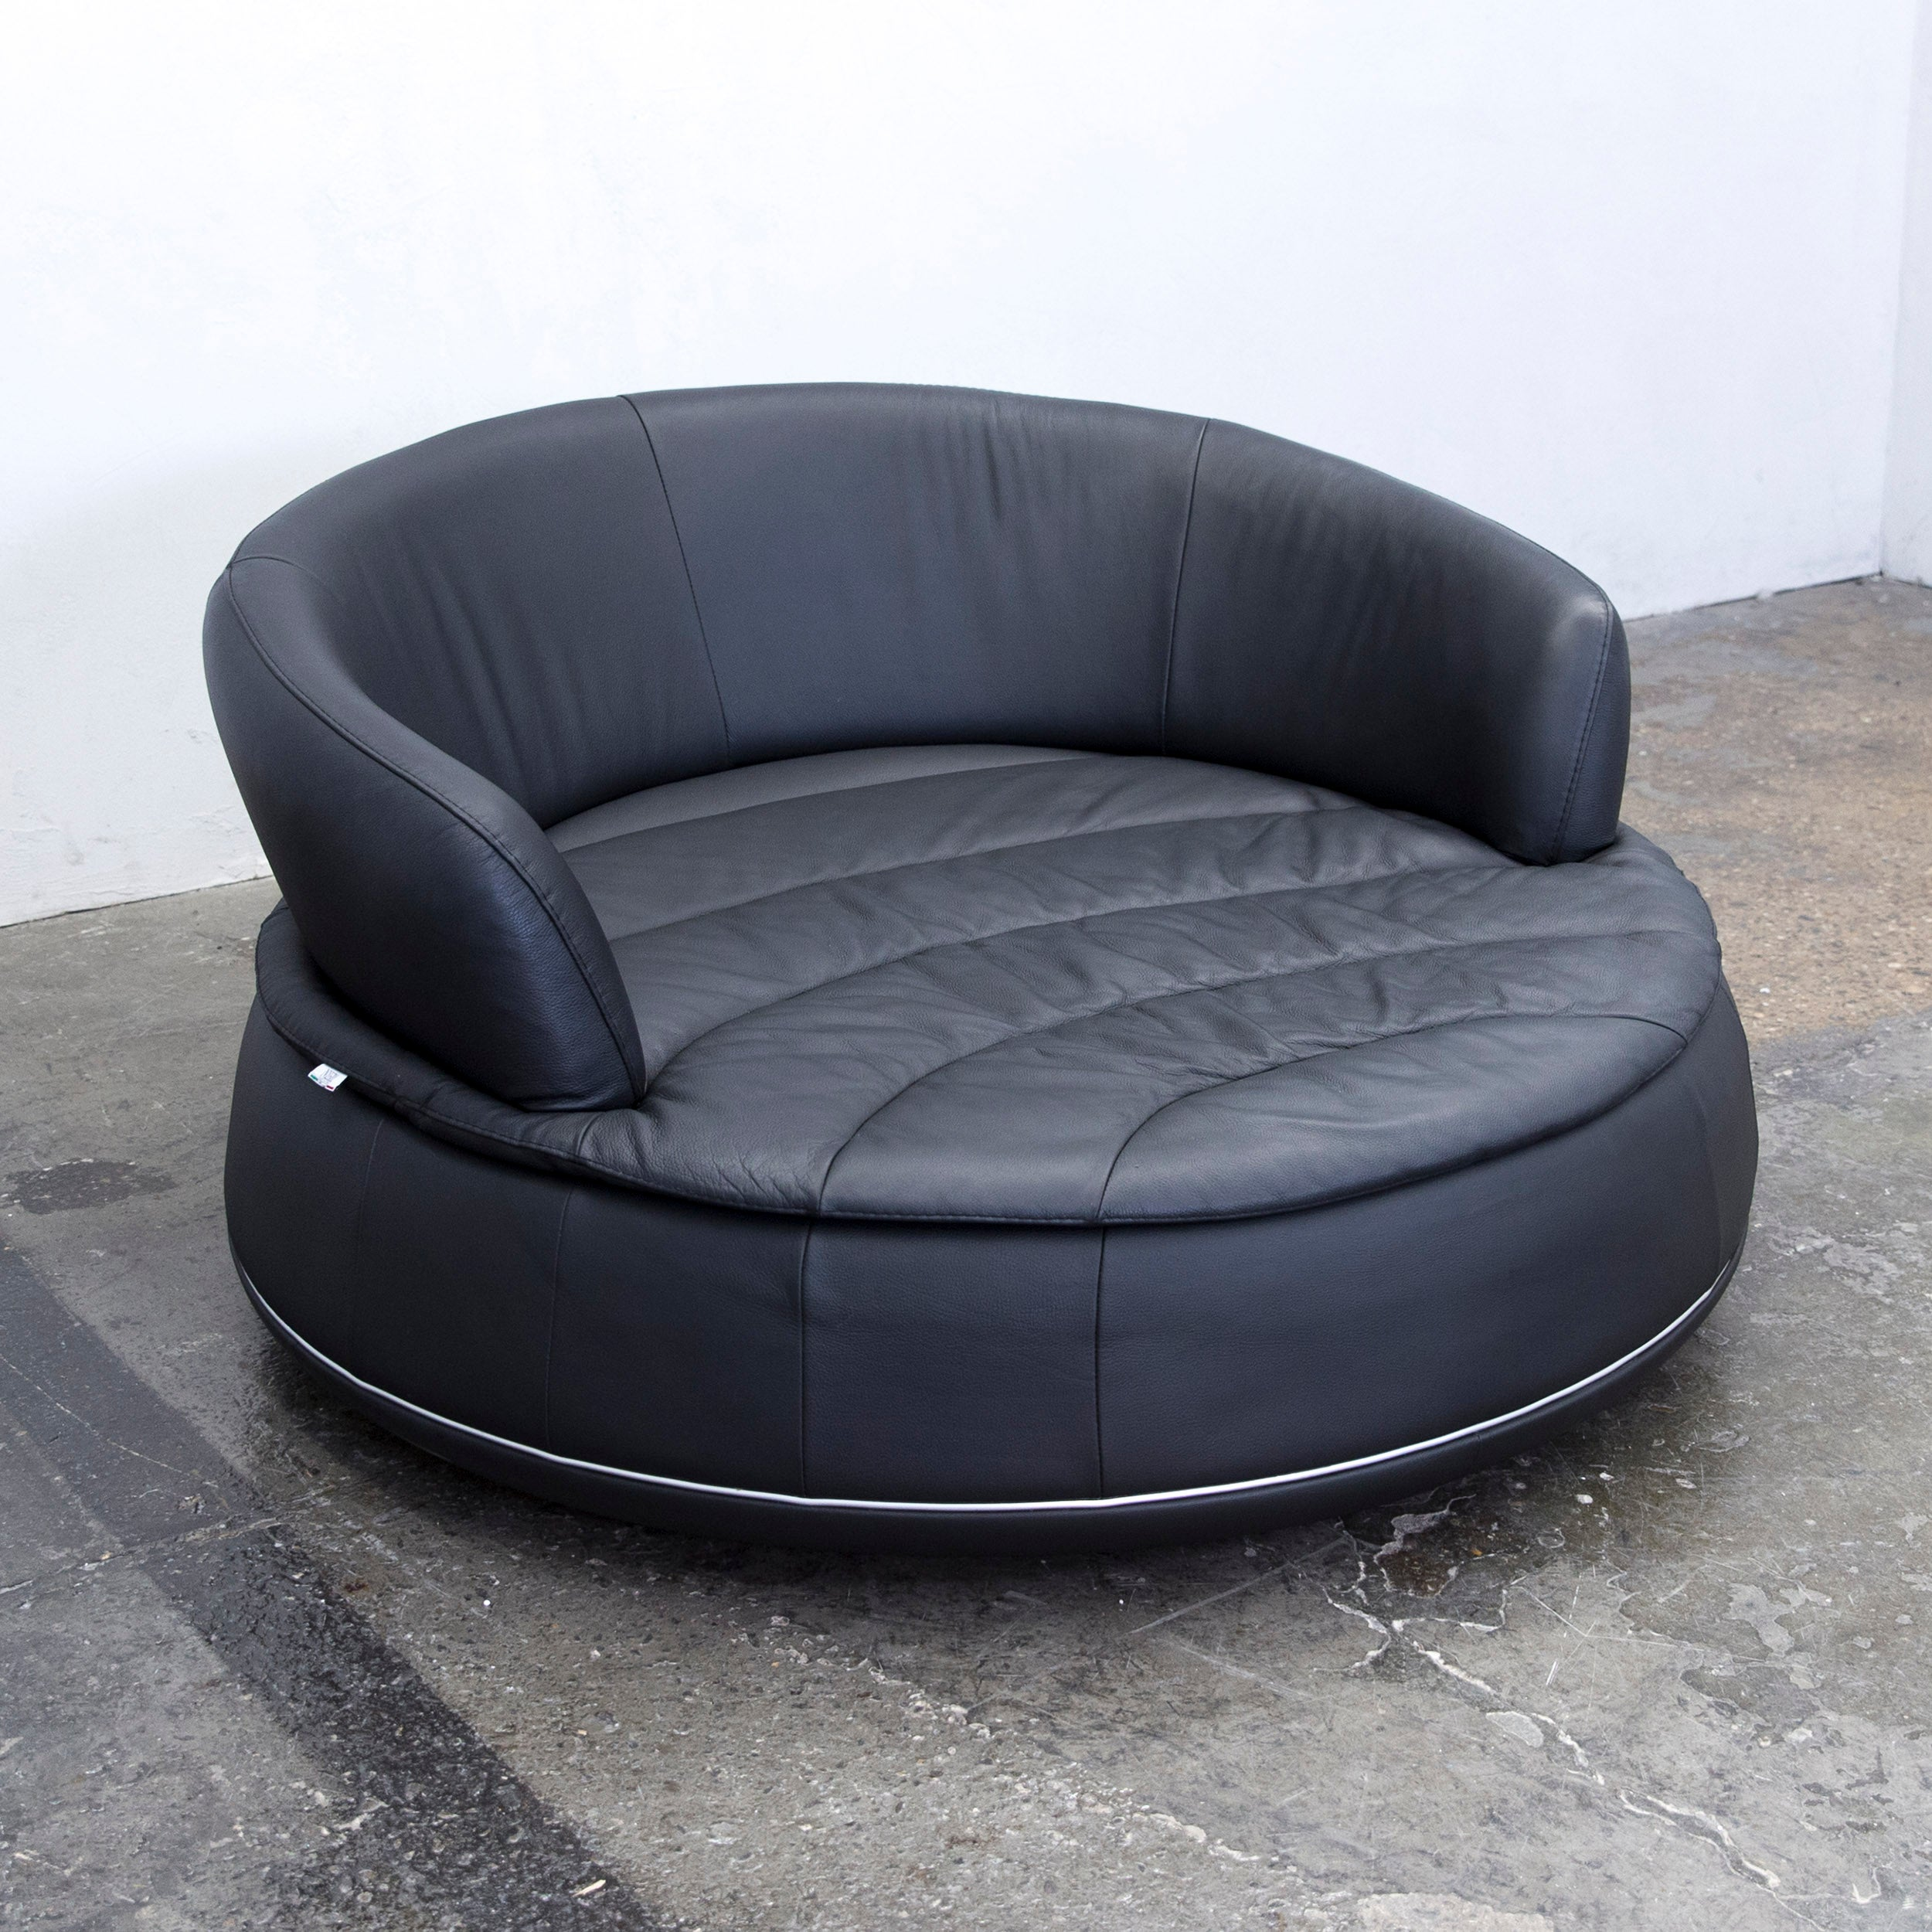 Sofa Rund Leder Nieri Espace Loveseat Designer Sofa Anthrazit Black Two Seat Round Lounge Couch